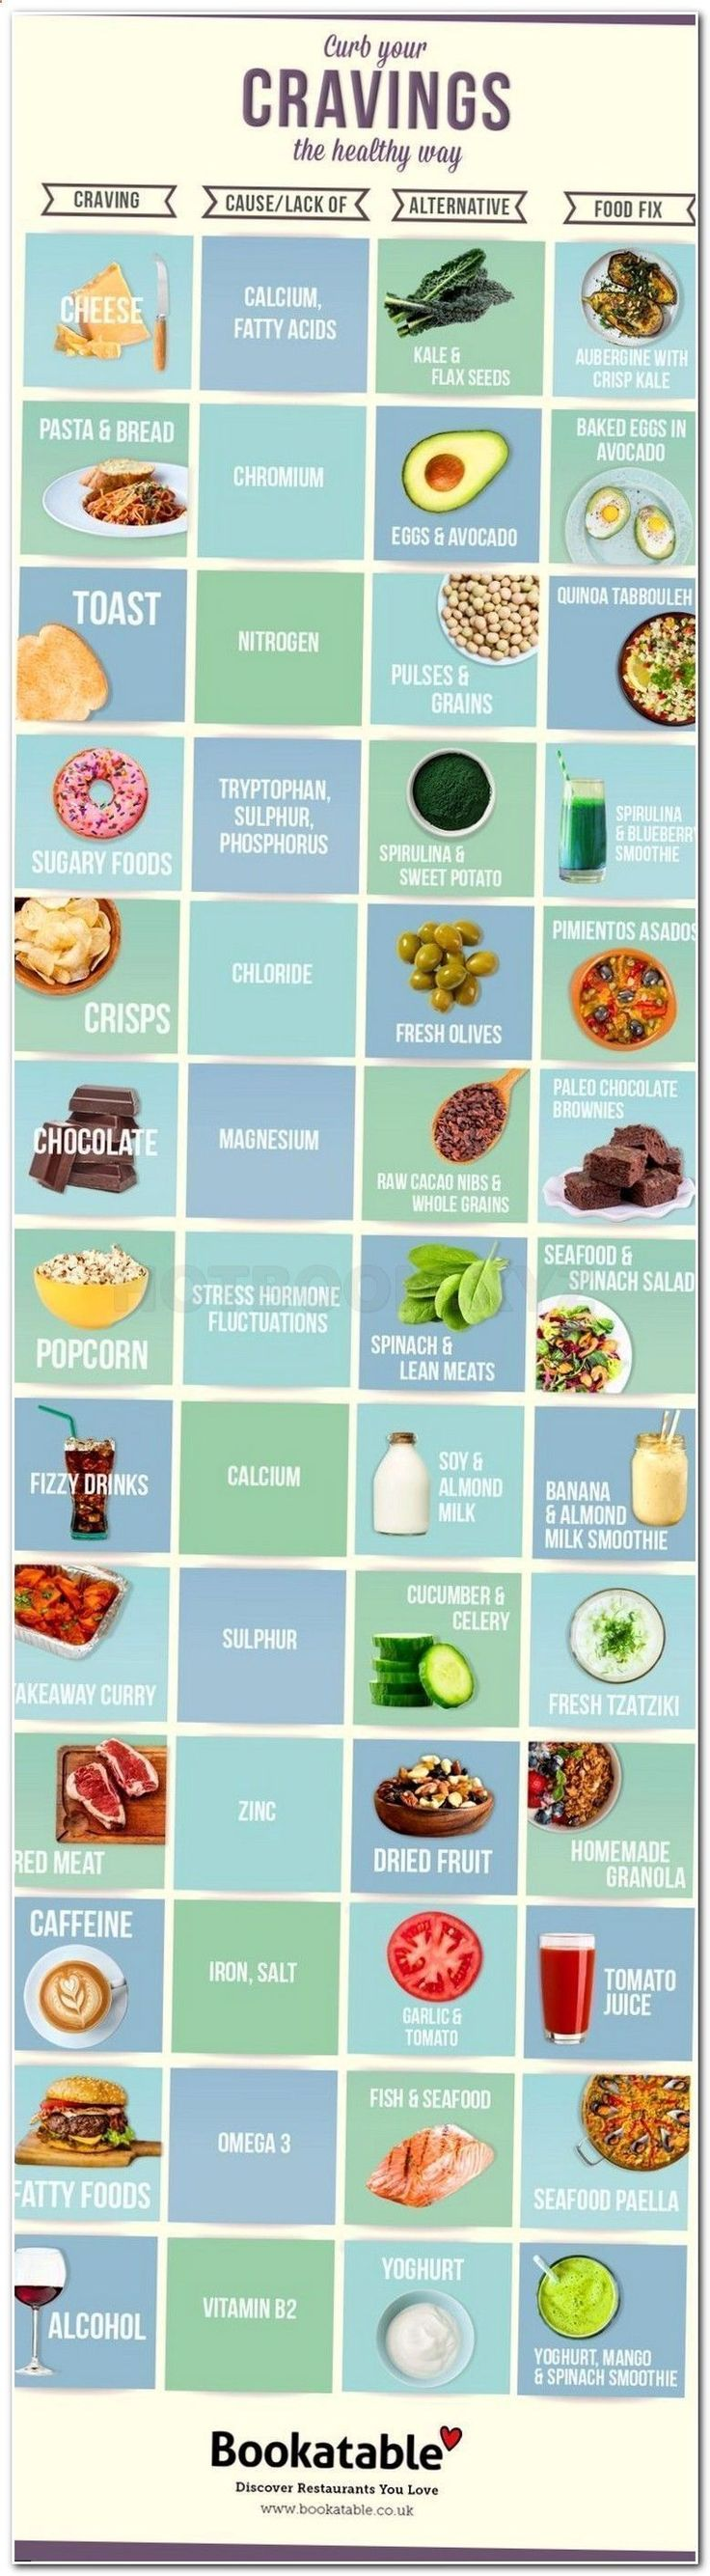 simple tips to lose weight fast, about weight loss, 1200 calories per day menu, low fat high protein meal plan, raw food detox diet, 1250 calorie meal plan, diet plan to lose weight fast in 2 weeks, weight loss raw food, how to lose my weight, lose weight eatdojo.com/... #rawfooddetox #loseweightmeals #weightlossmealplan